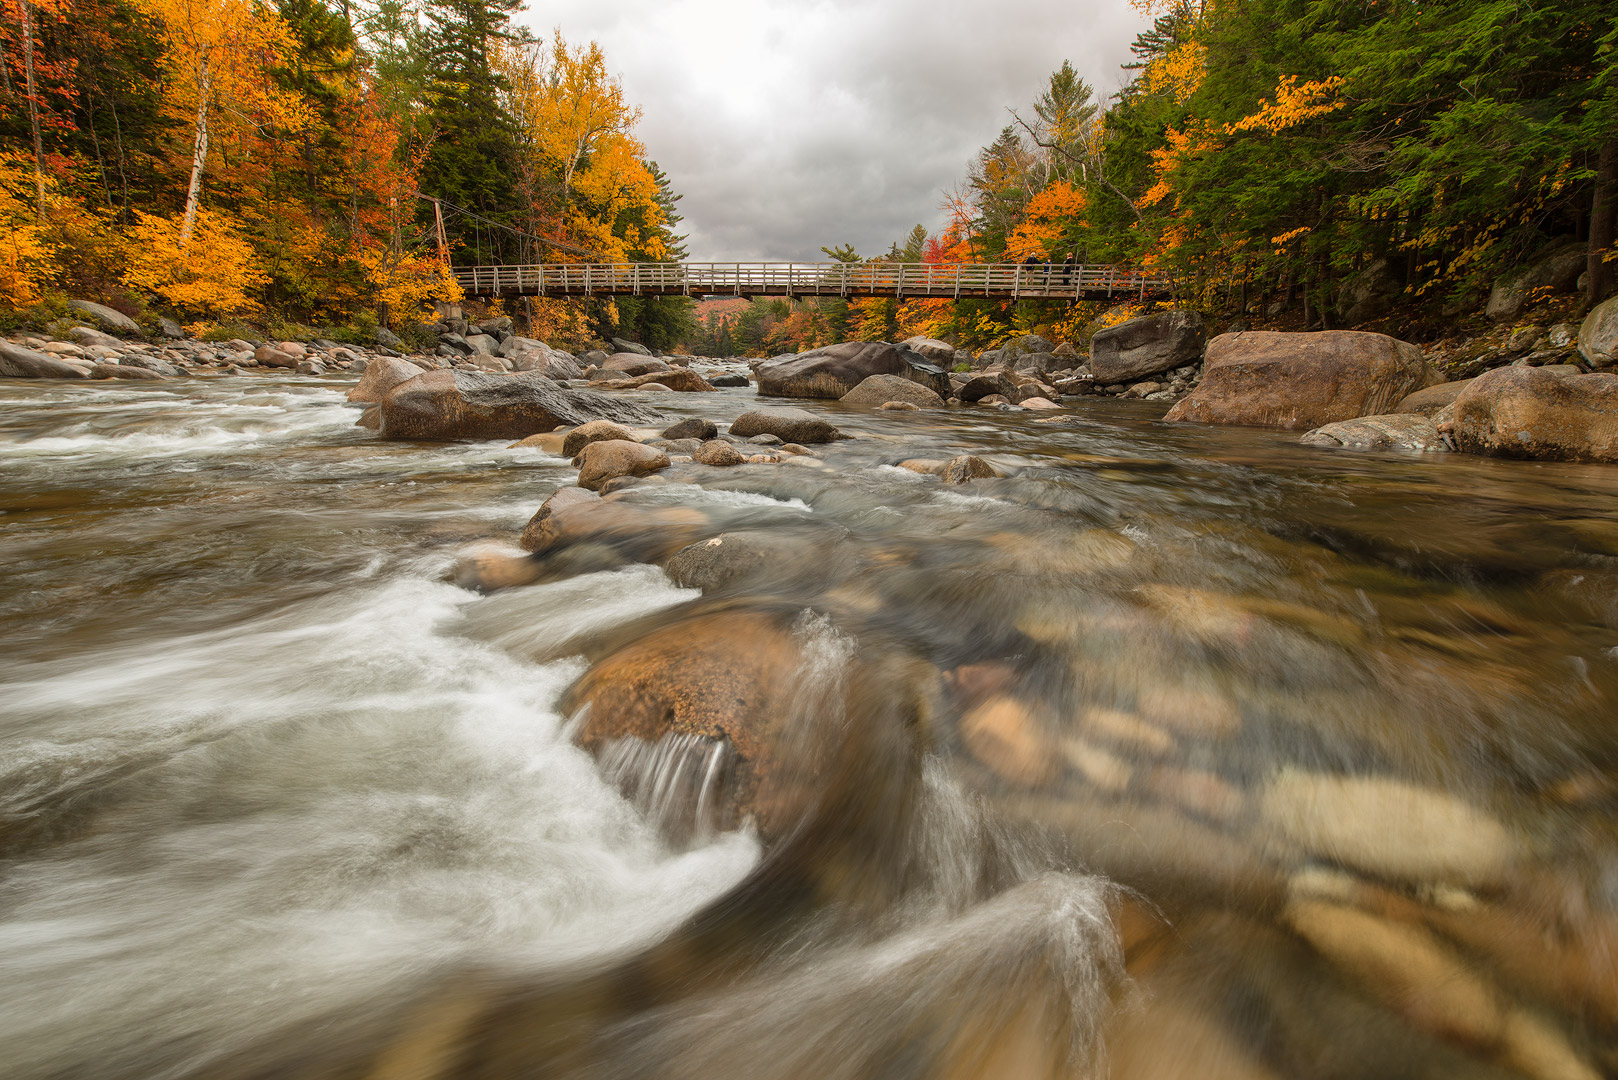 Kancamagus Highway, White Mountains, New Hampshire, Autumn, Bright, Colorful, Leaves, Fall Season, Road, Trees, Bridge, River, Water, Rush, photo